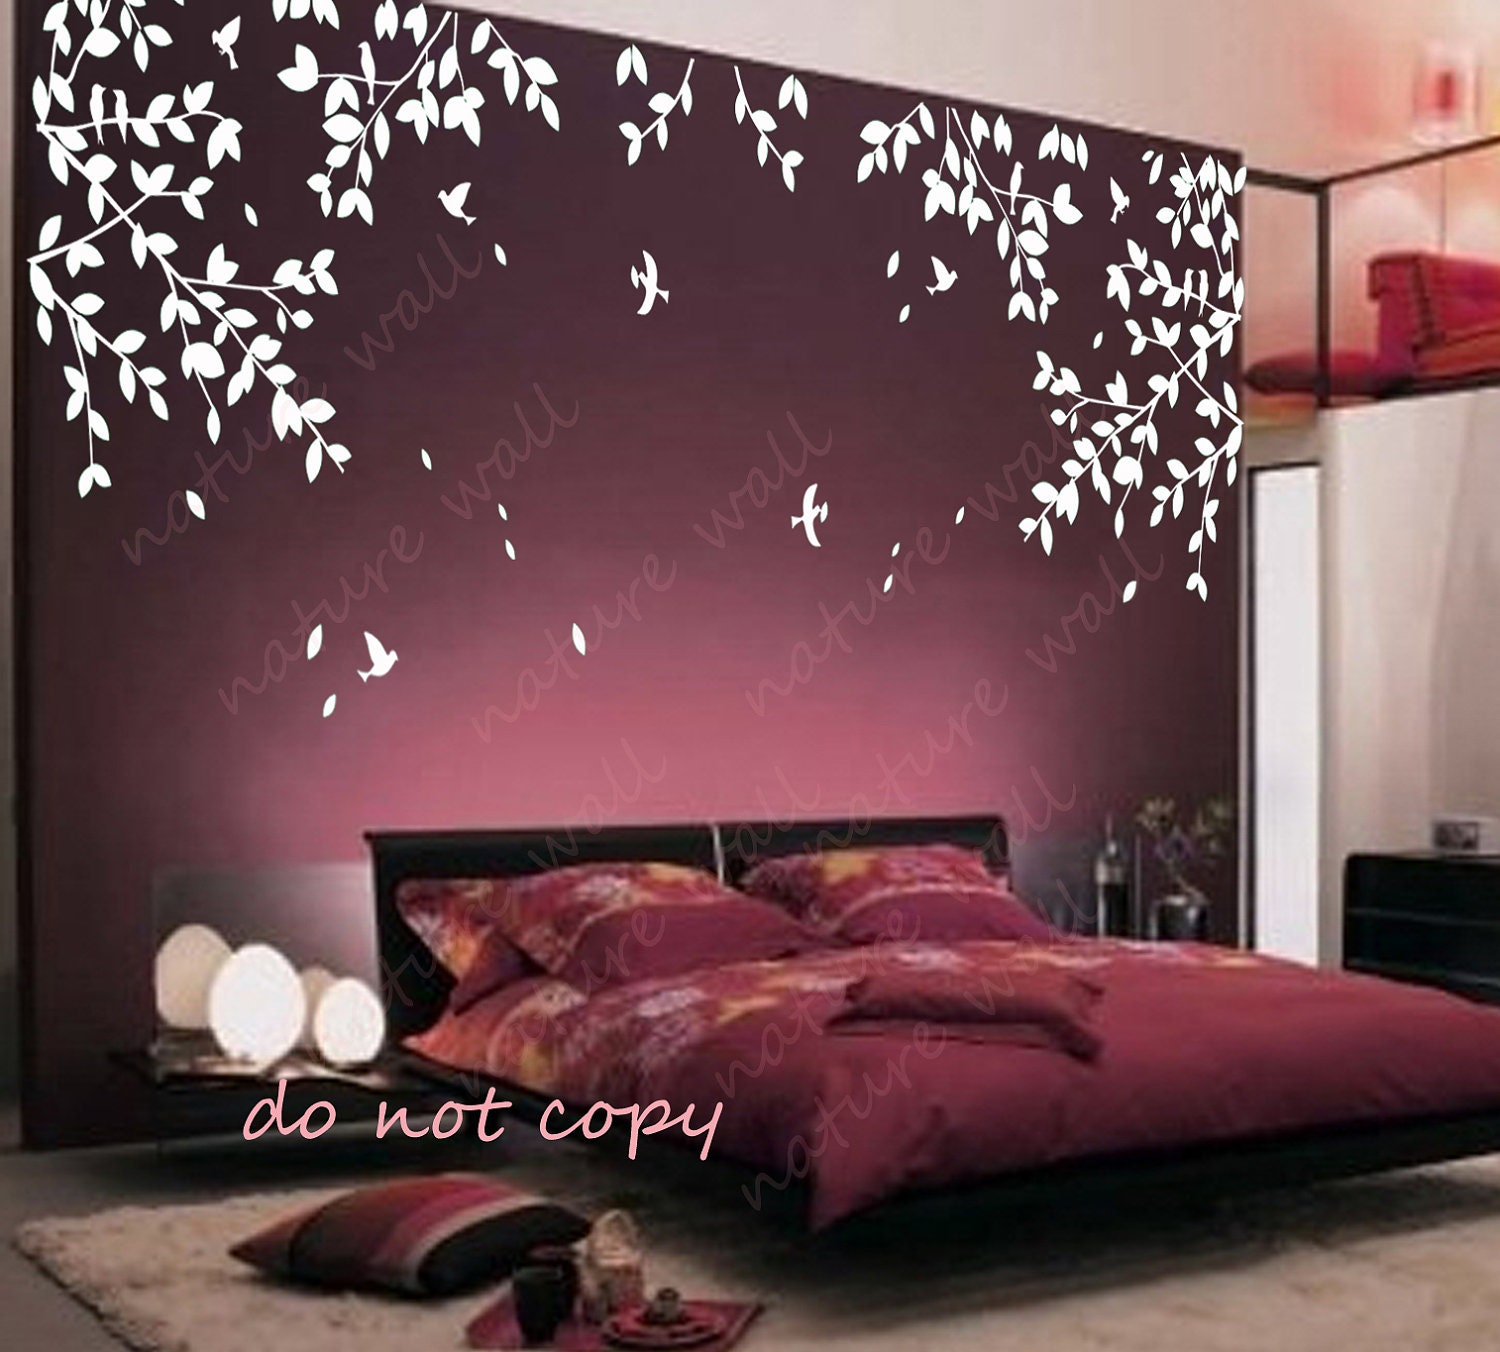 Wall decor made from branches interior decorating Wall stickers for bedrooms